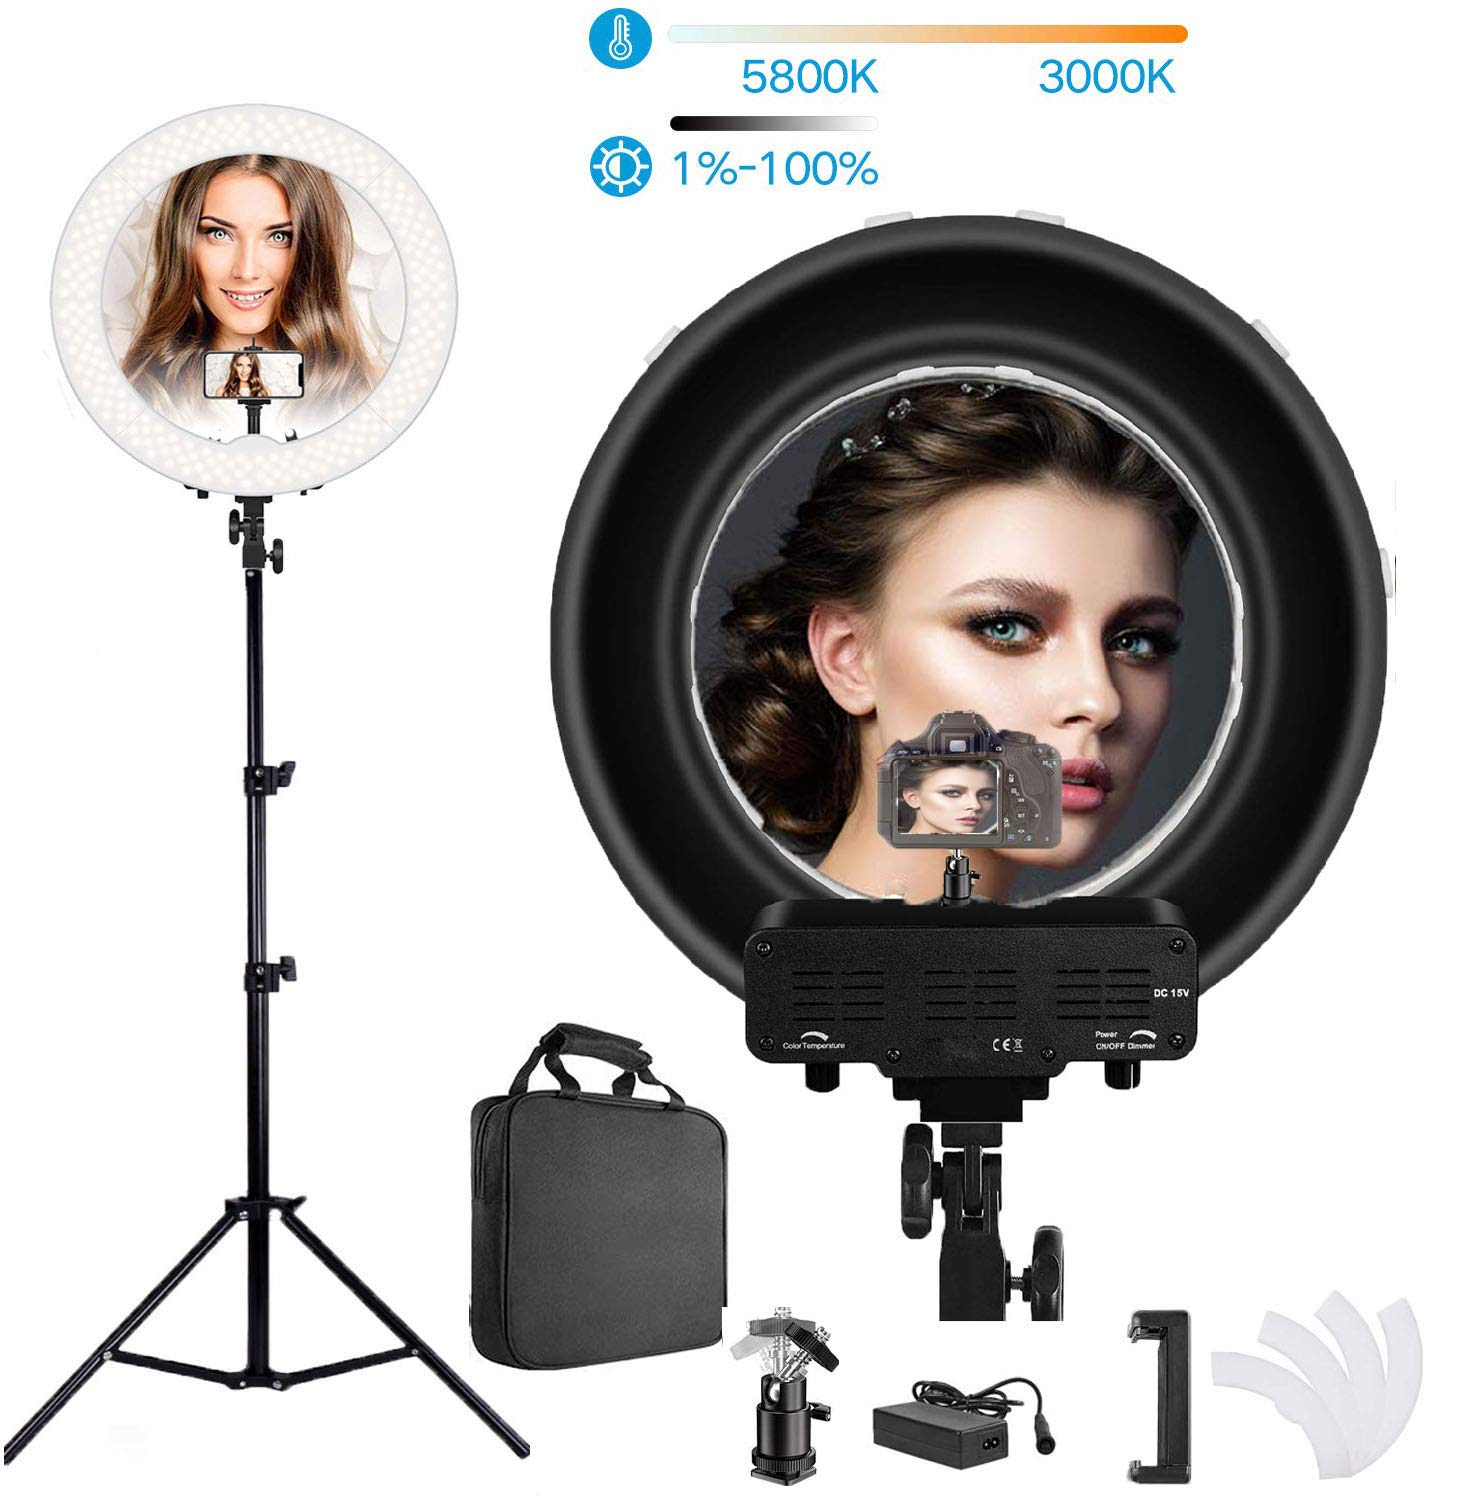 18 Inch Led Ring Light,3200-5800K Bi-Color Dimmable Selfie Ring Light Continuous Lighting Camera Light with Stand and Phone Holder for Photography Make-up YouTube Video Shooting by KEYUTE